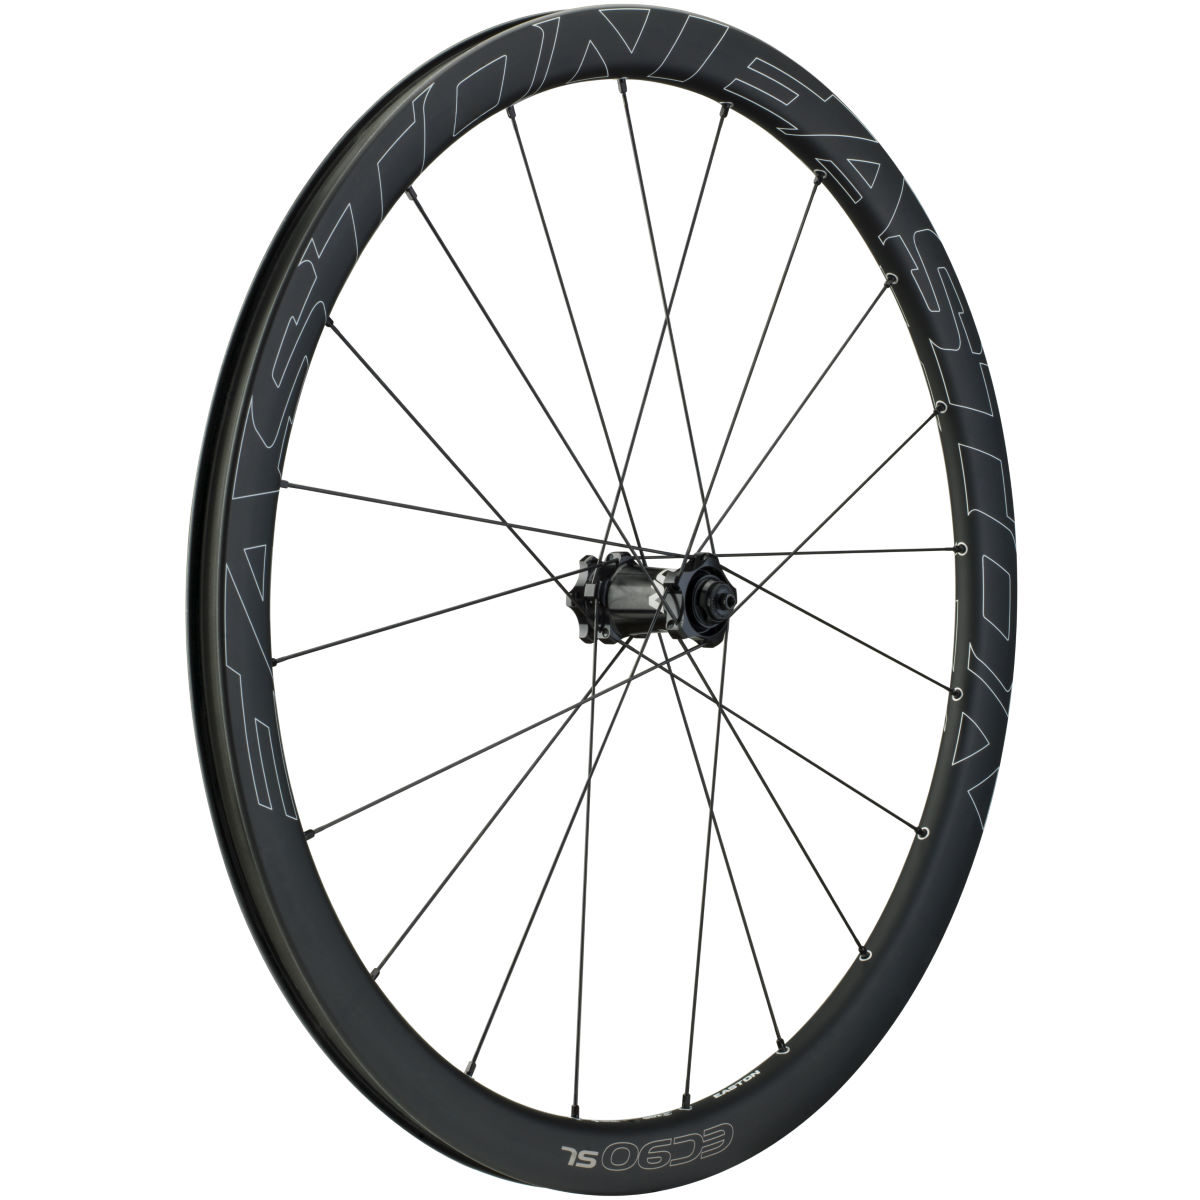 Easton EC90 SL Disc Front Road Wheel - Clincher - Ruedas de competición